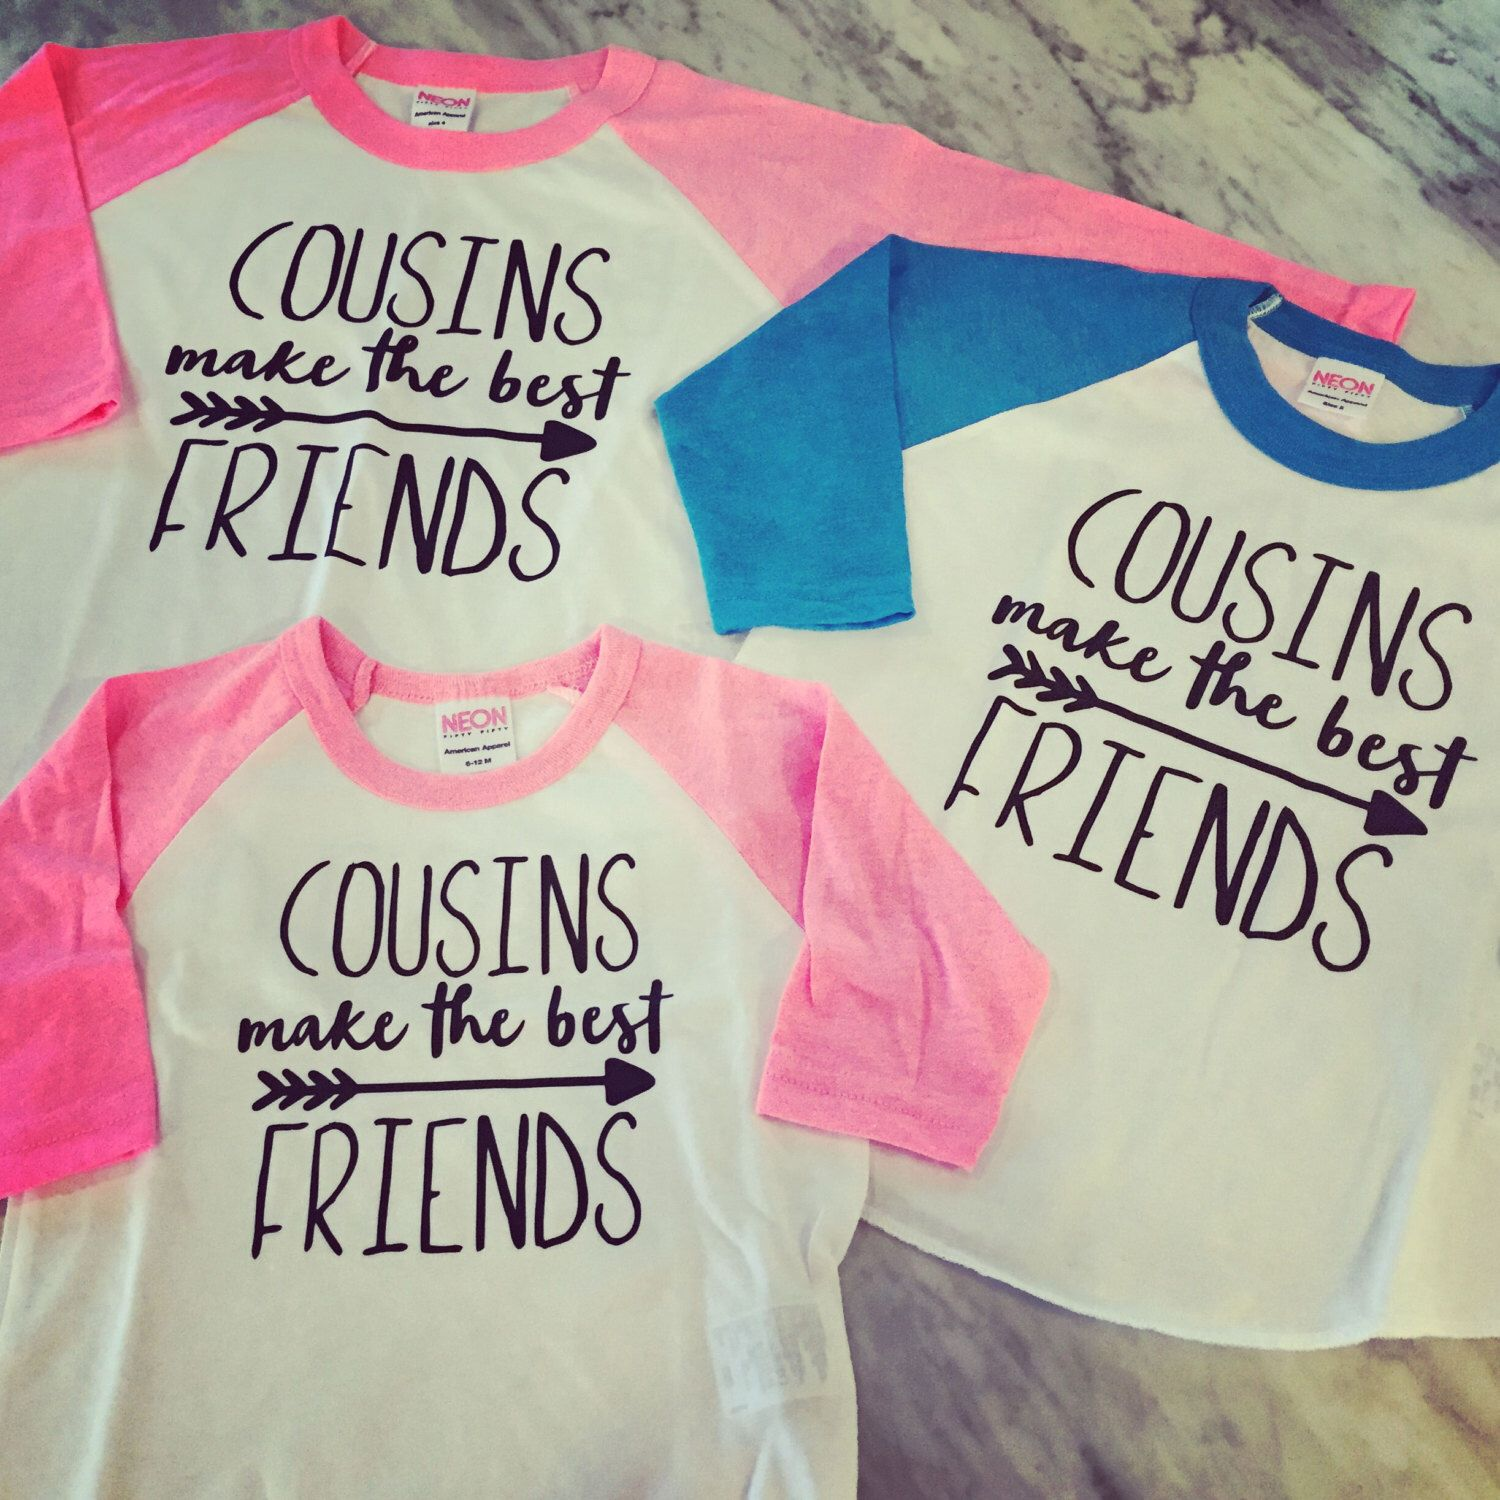 cousins make the best friends best friends shirts